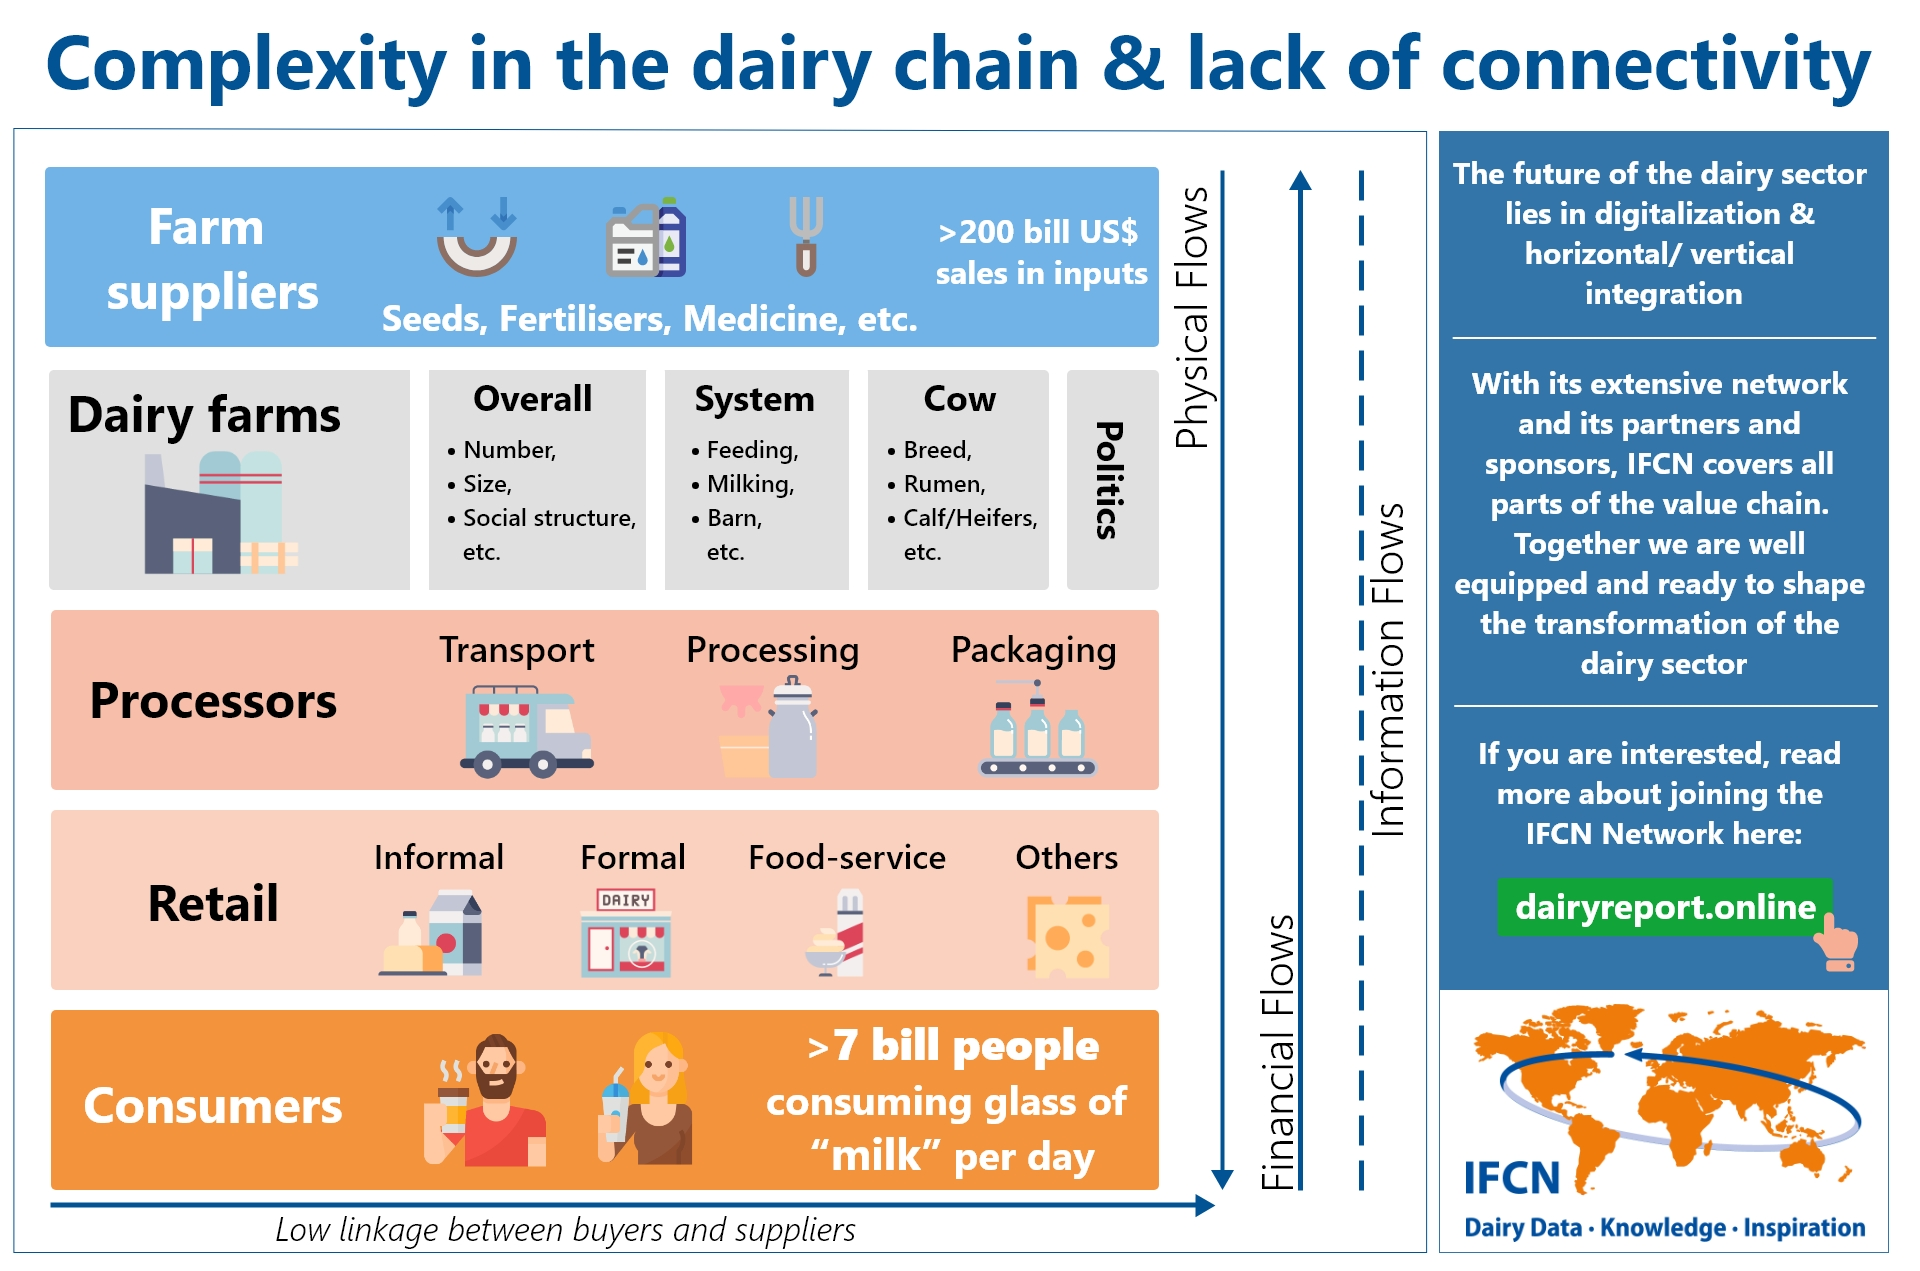 Complexity in the dairy chain & lack of connectivity